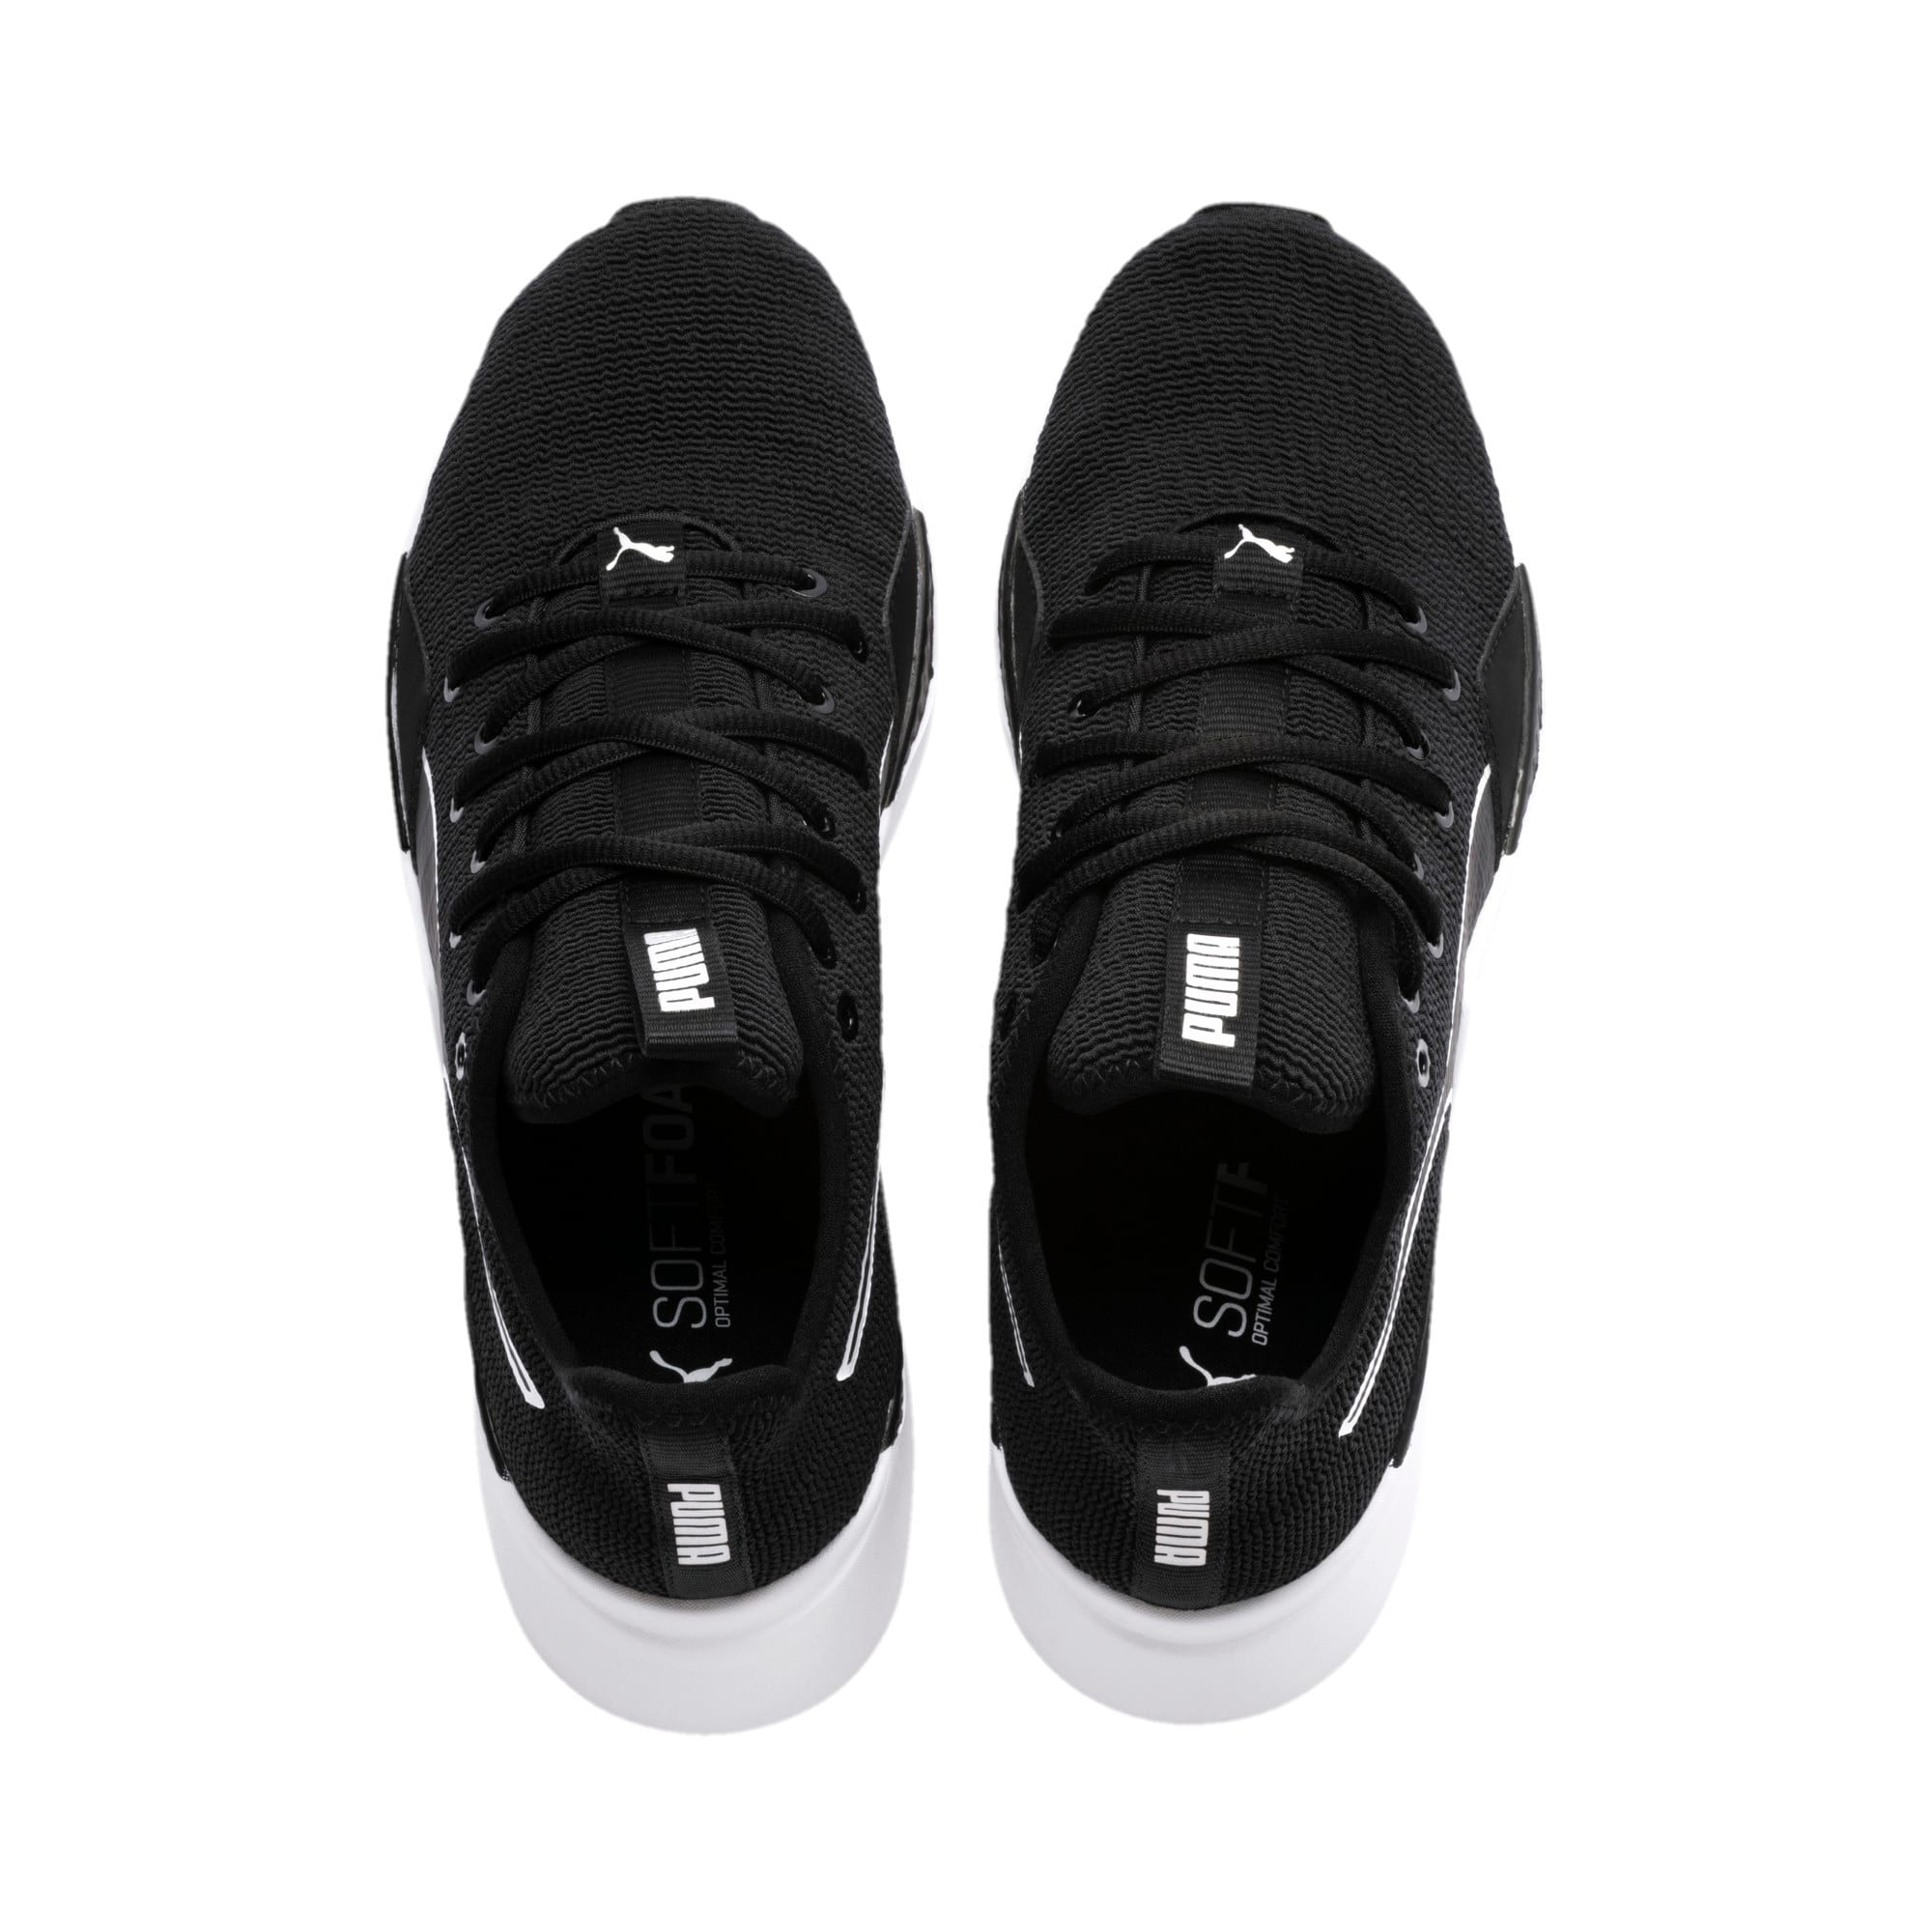 Thumbnail 3 of The Black Incite FS Wave Wn's, Puma Black-Puma White, medium-IND